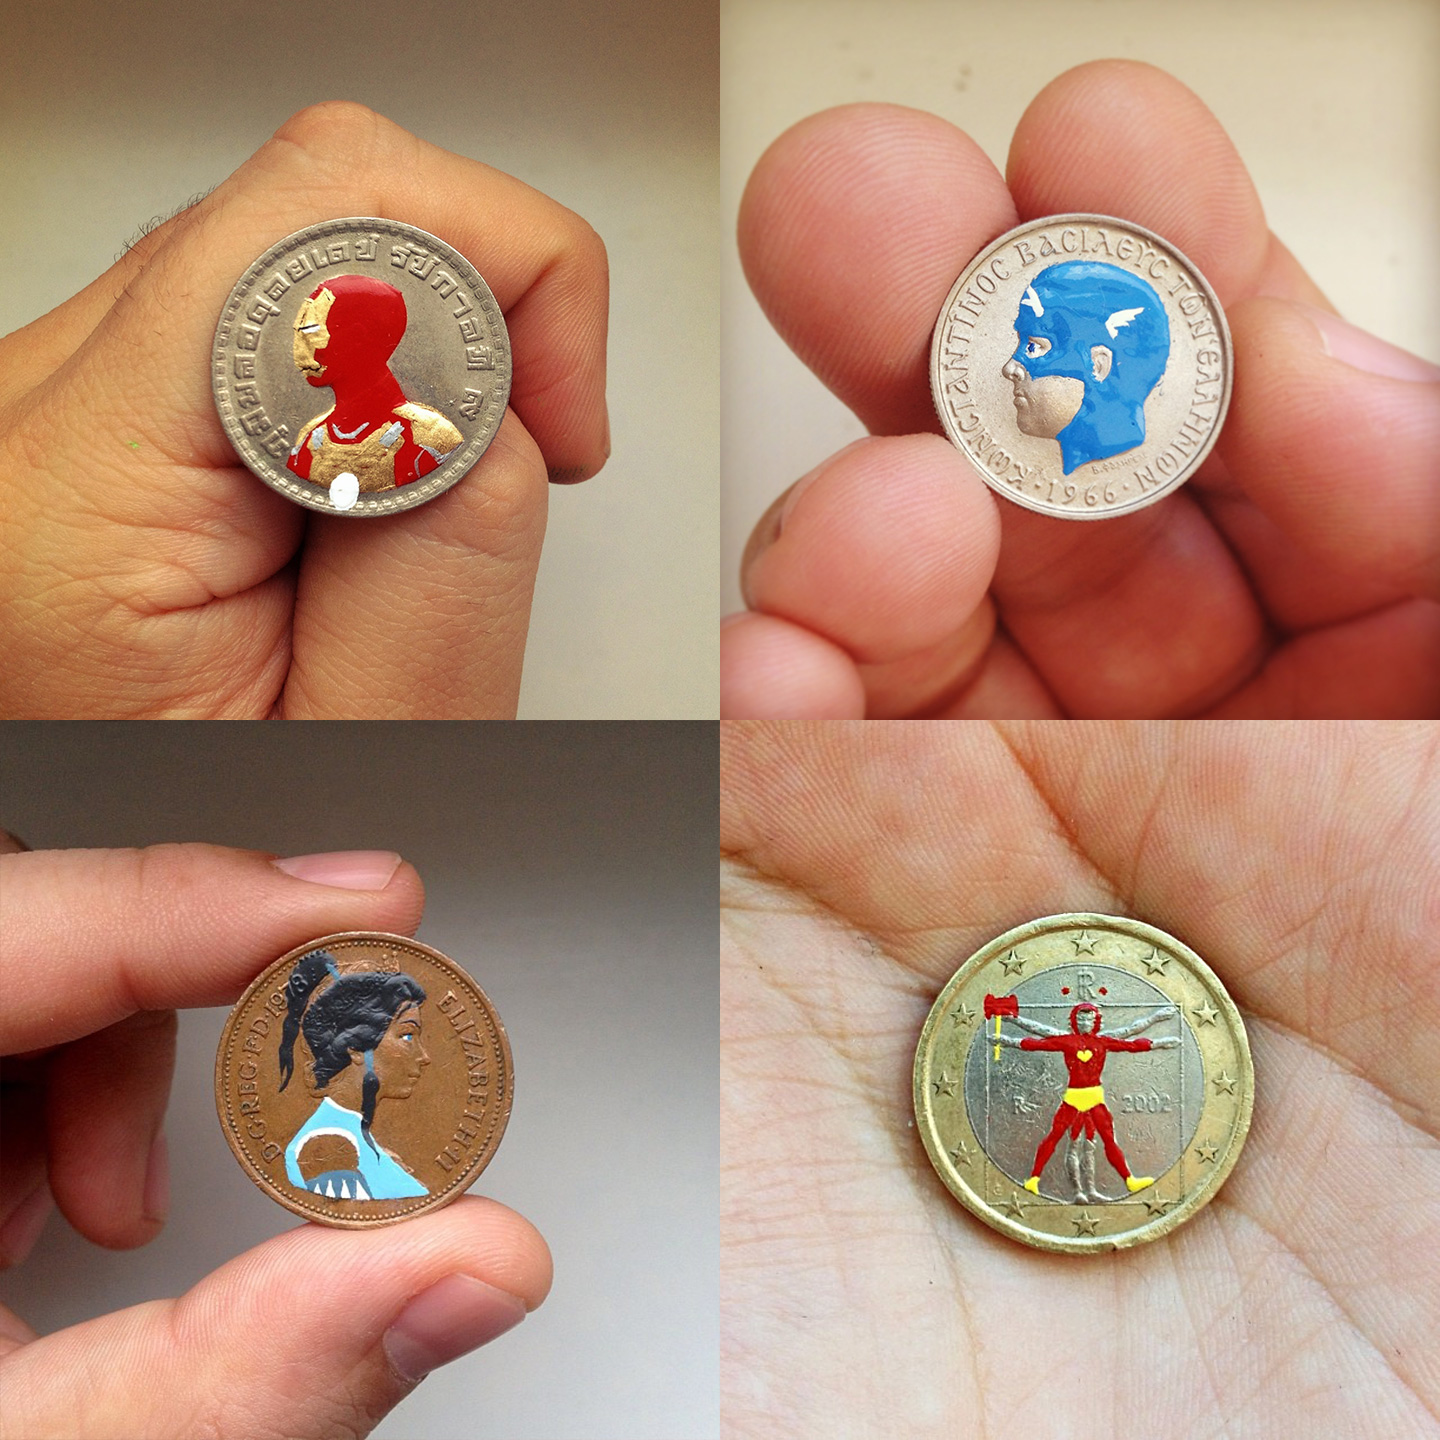 pop_art_andre_levy_zhion_coin_talesyoulose_portrait_money_miniature_ironman_captain_america_avengers_avatar_korra_chapulin_chapolin_colorado.jpg